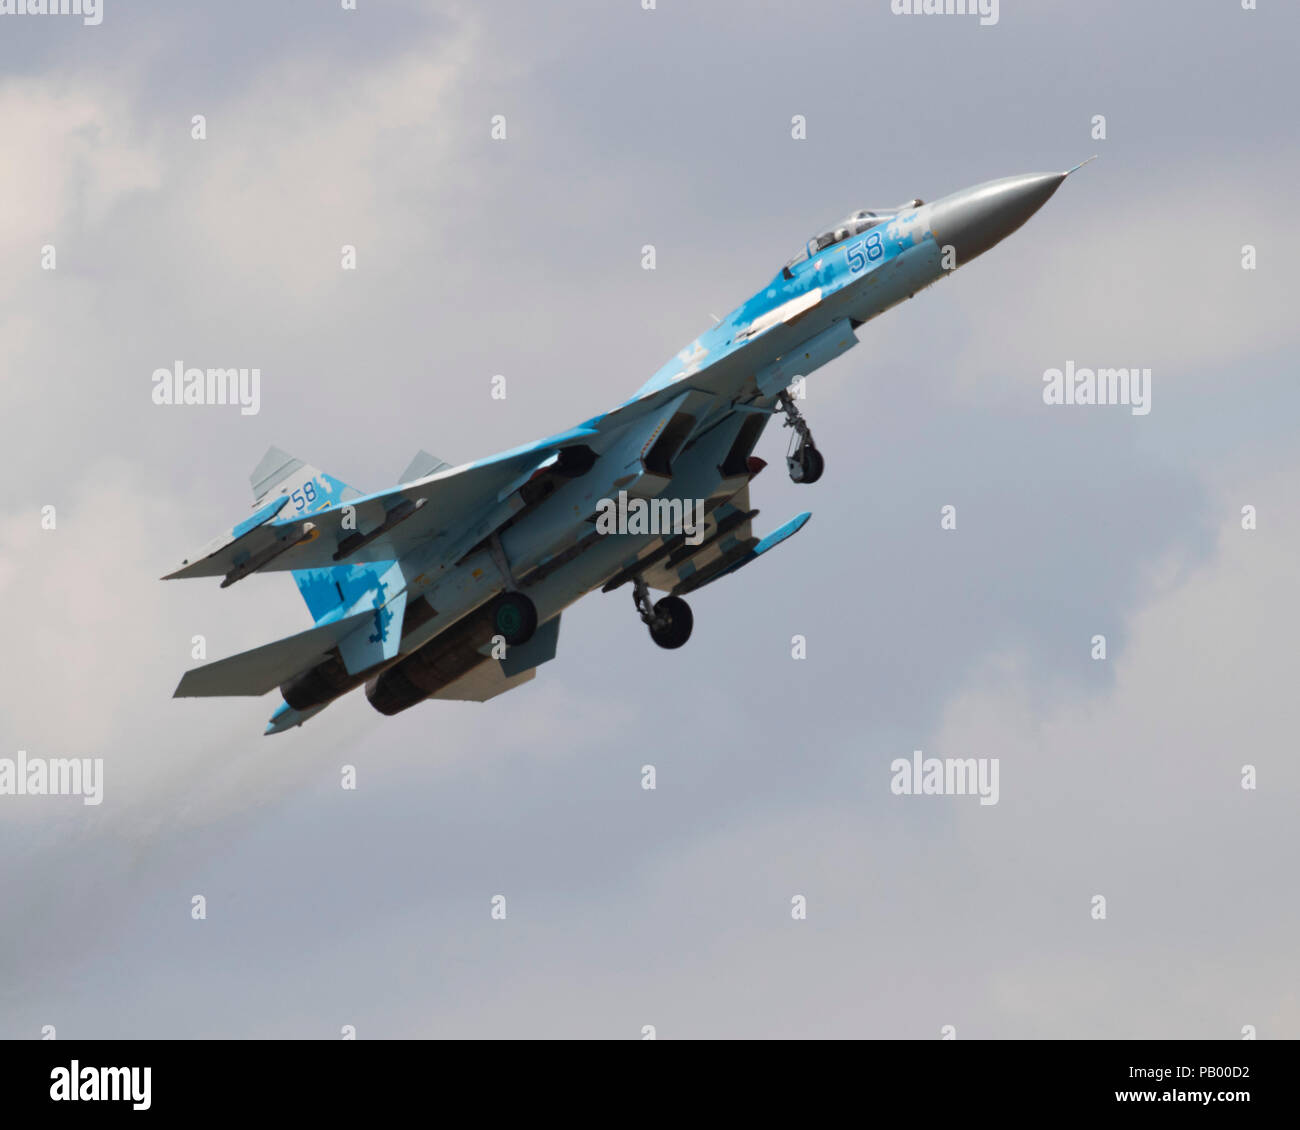 Ukrainian Sukhoi SU-27 Flanker jet fighter combat aircraft flying at the 2018 Royal International Air Tattoo - Stock Image